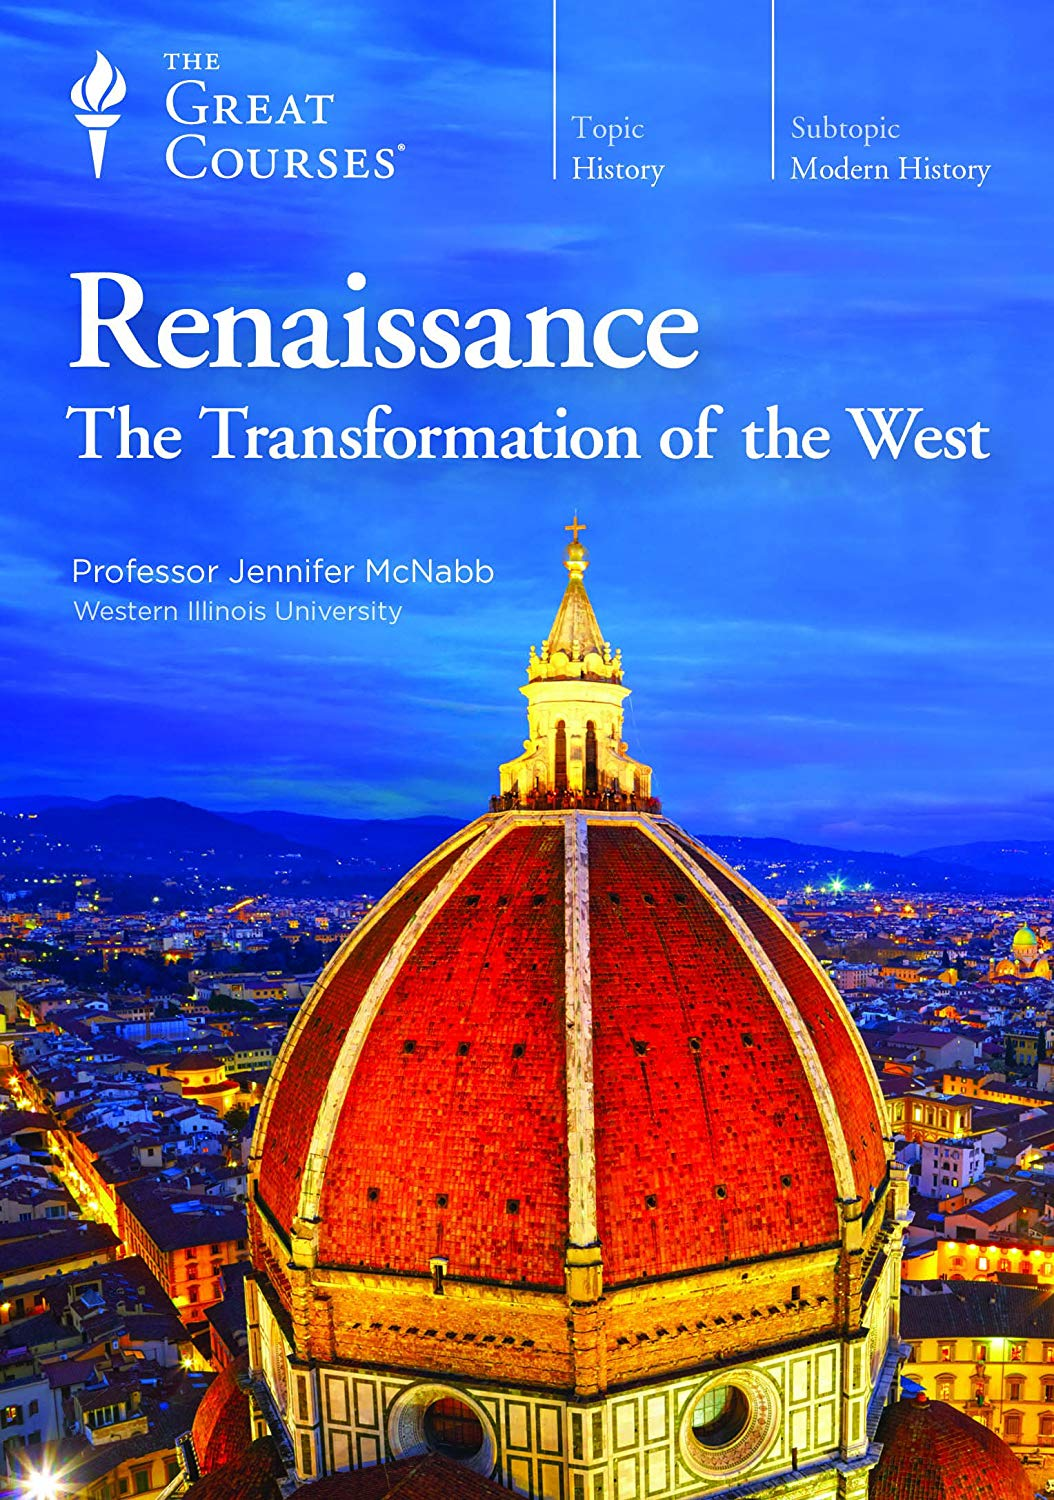 Renaissance: The Transformation of the West - The Great Courses